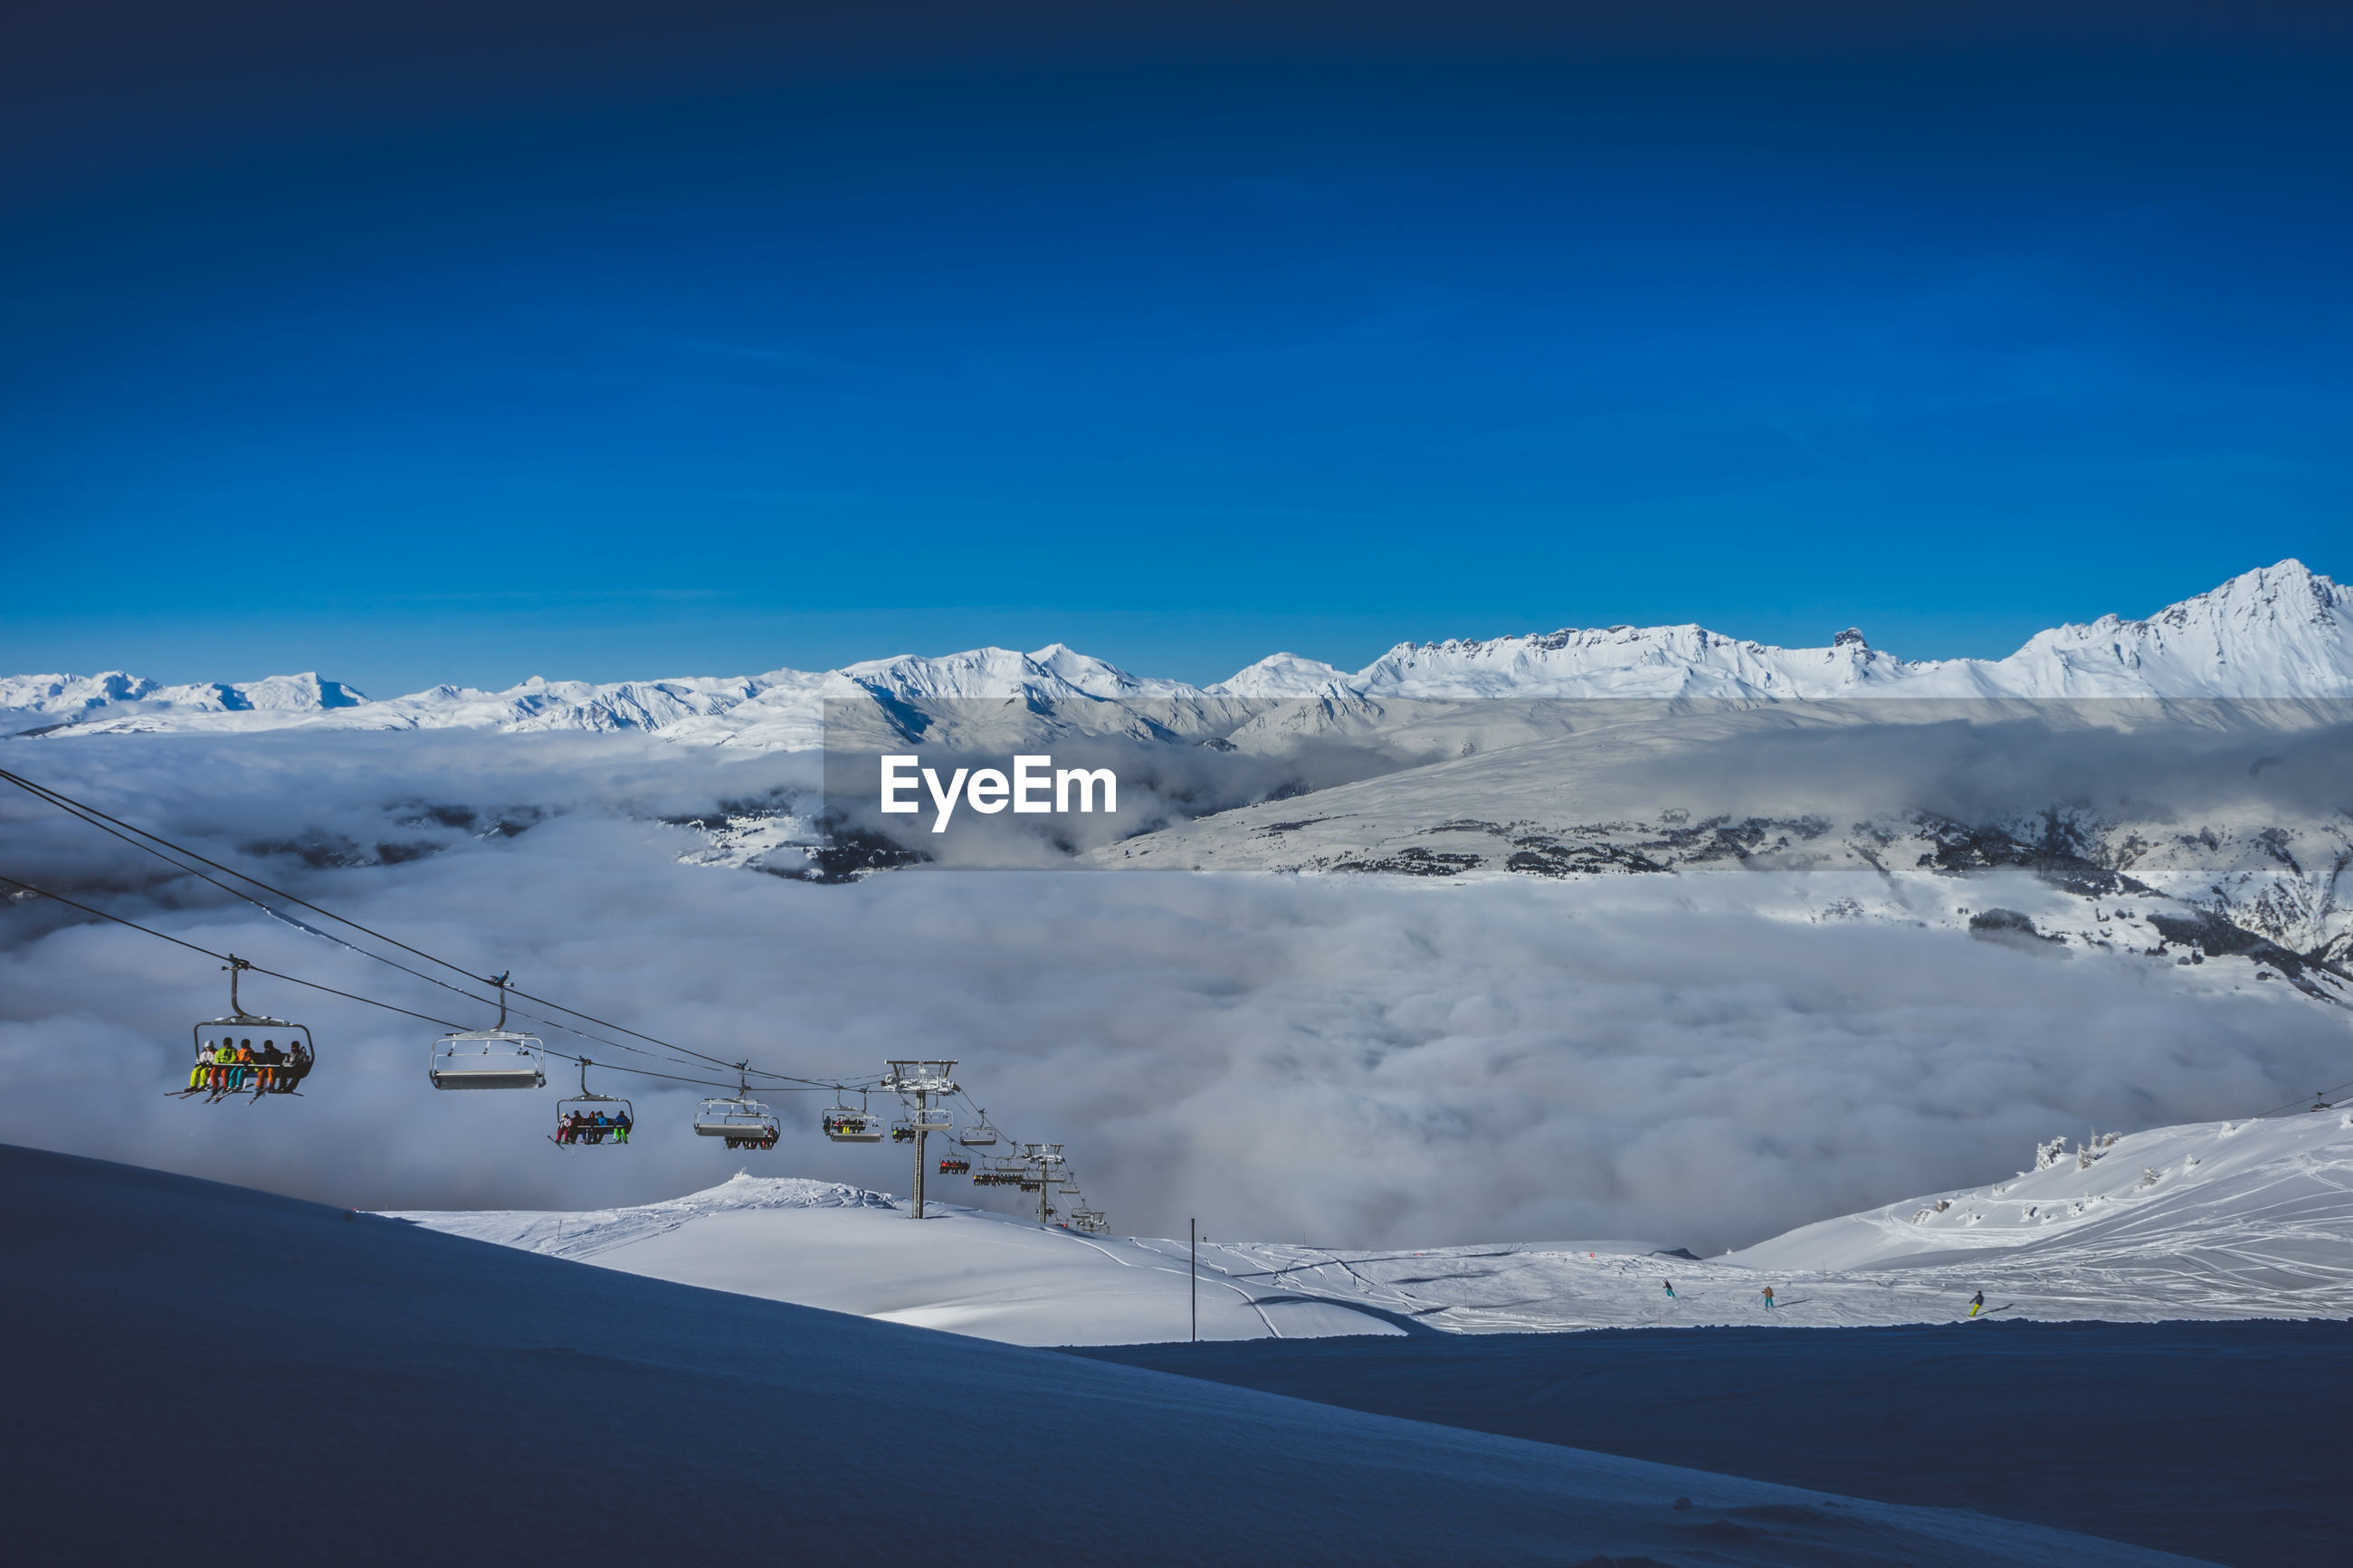 A chairlift rising out of a valley of clouds in les arcs